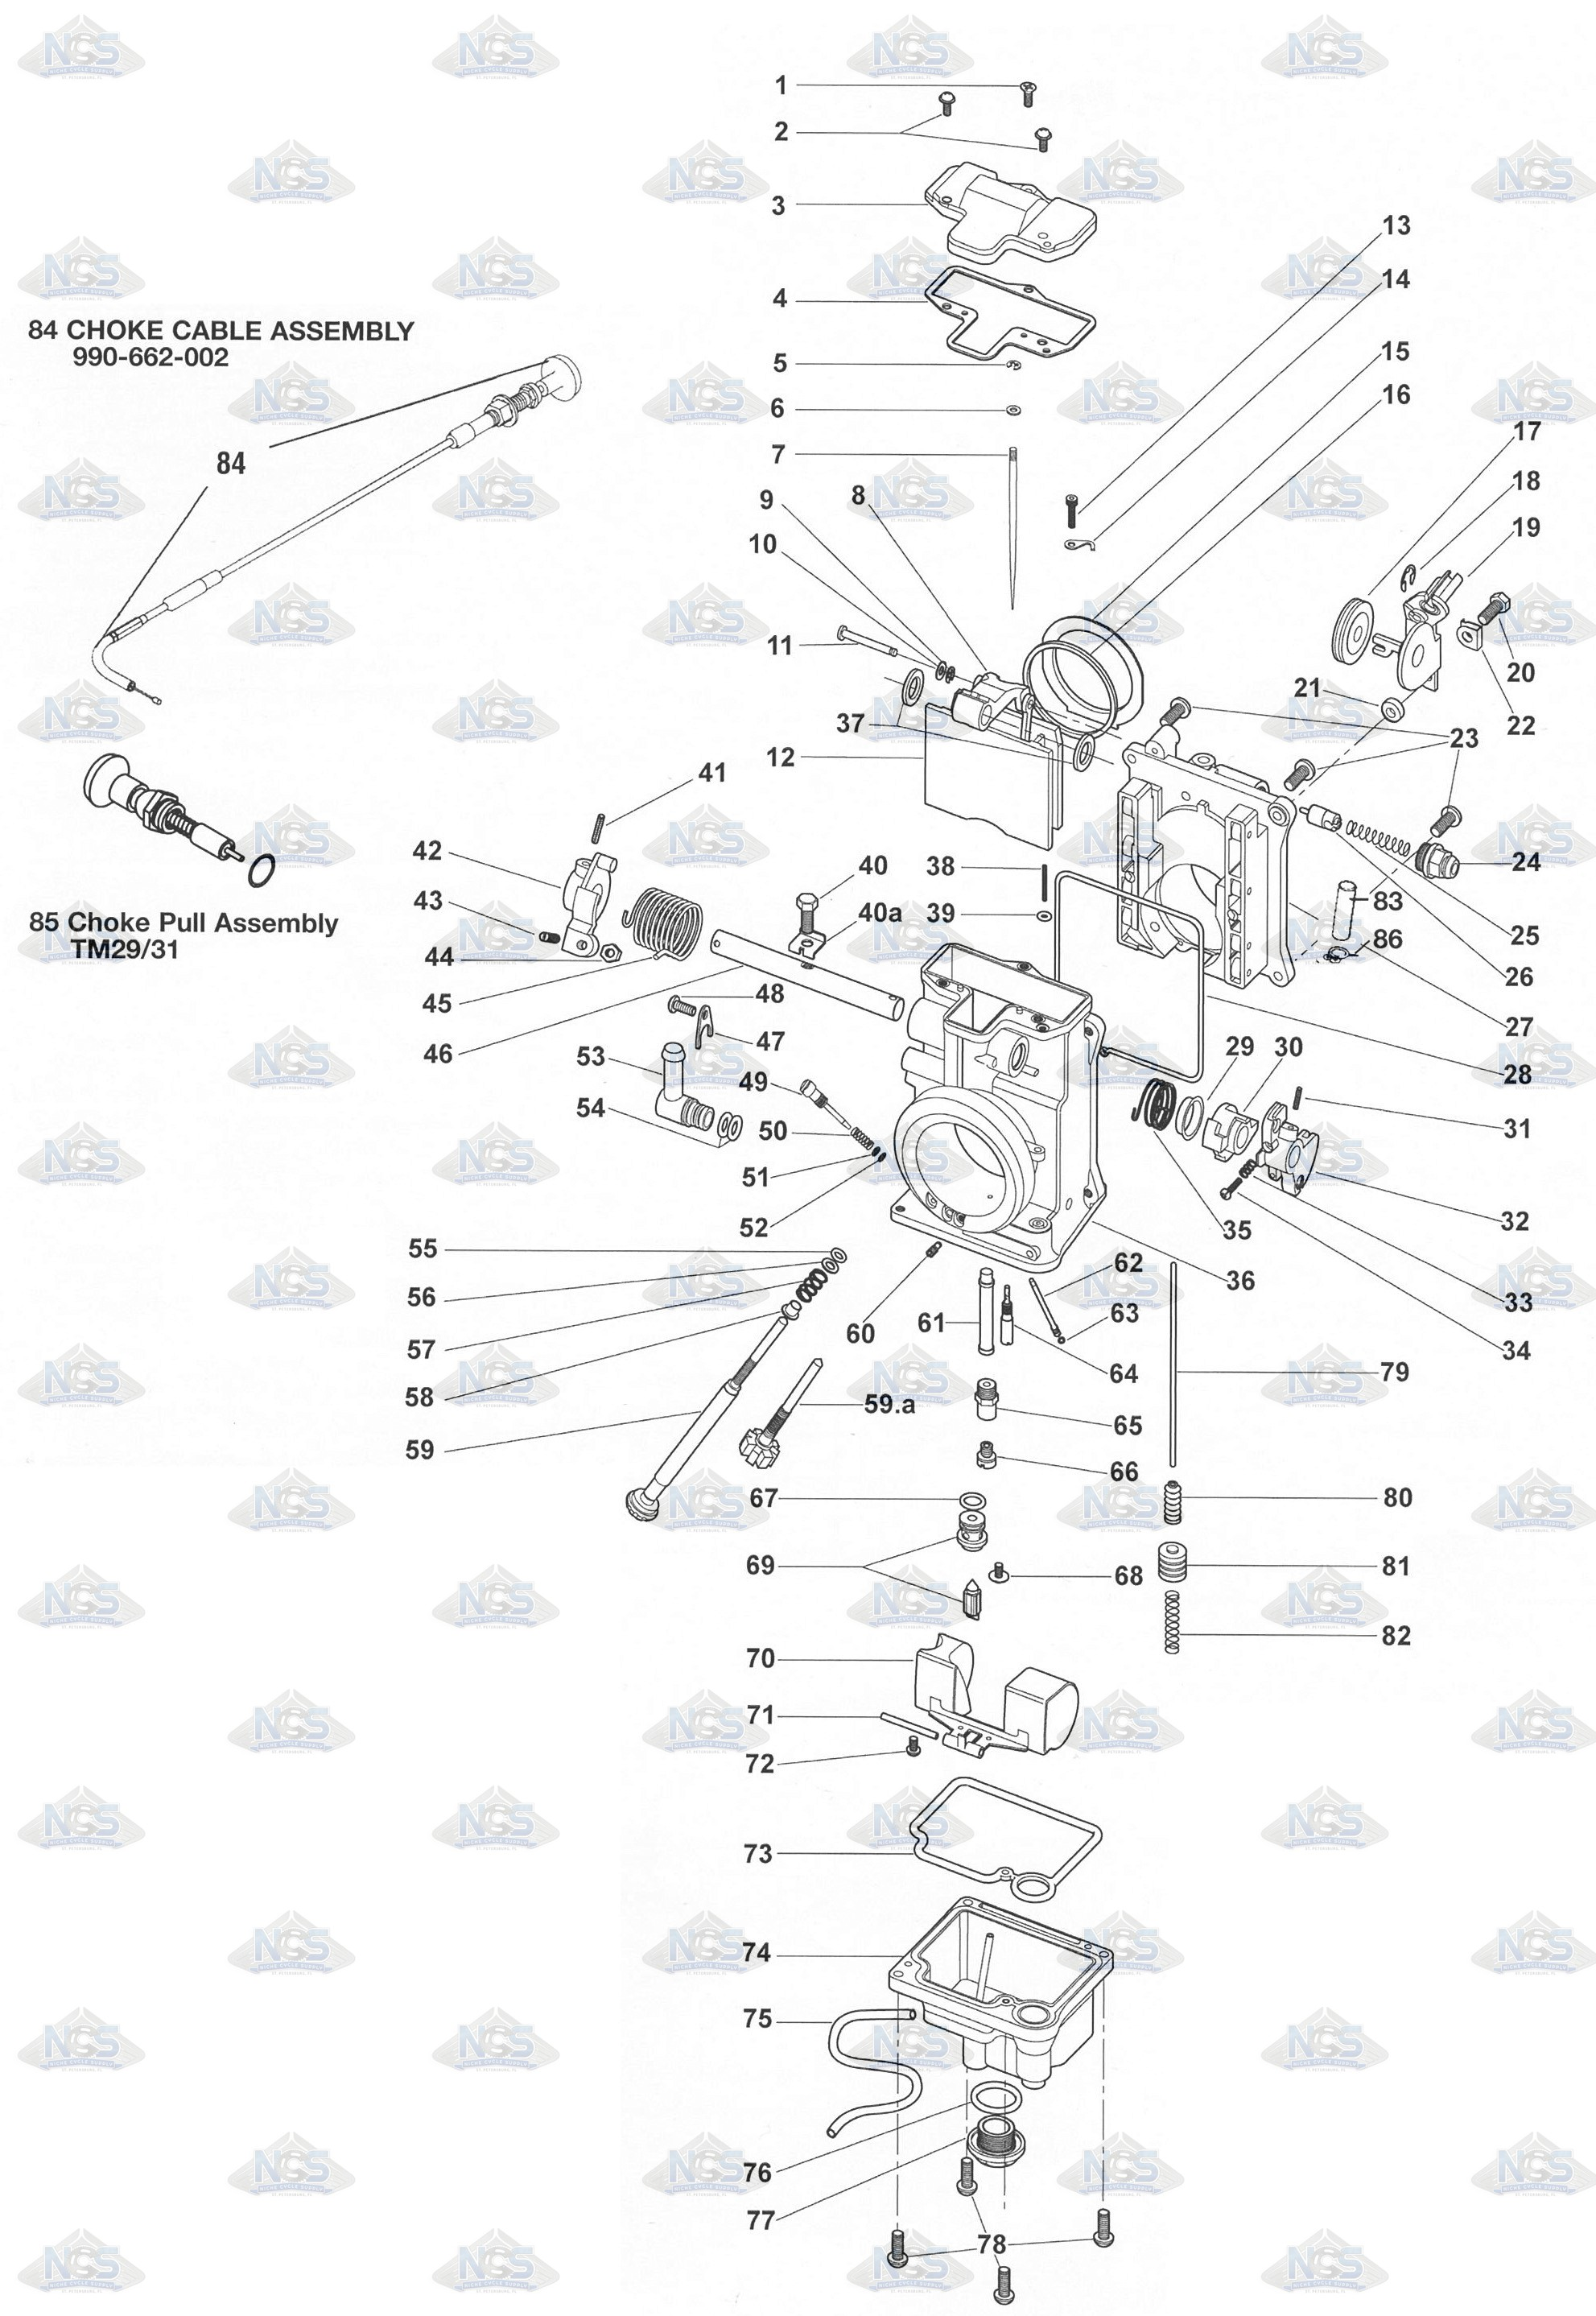 44mm Mikuni Carb Diagram